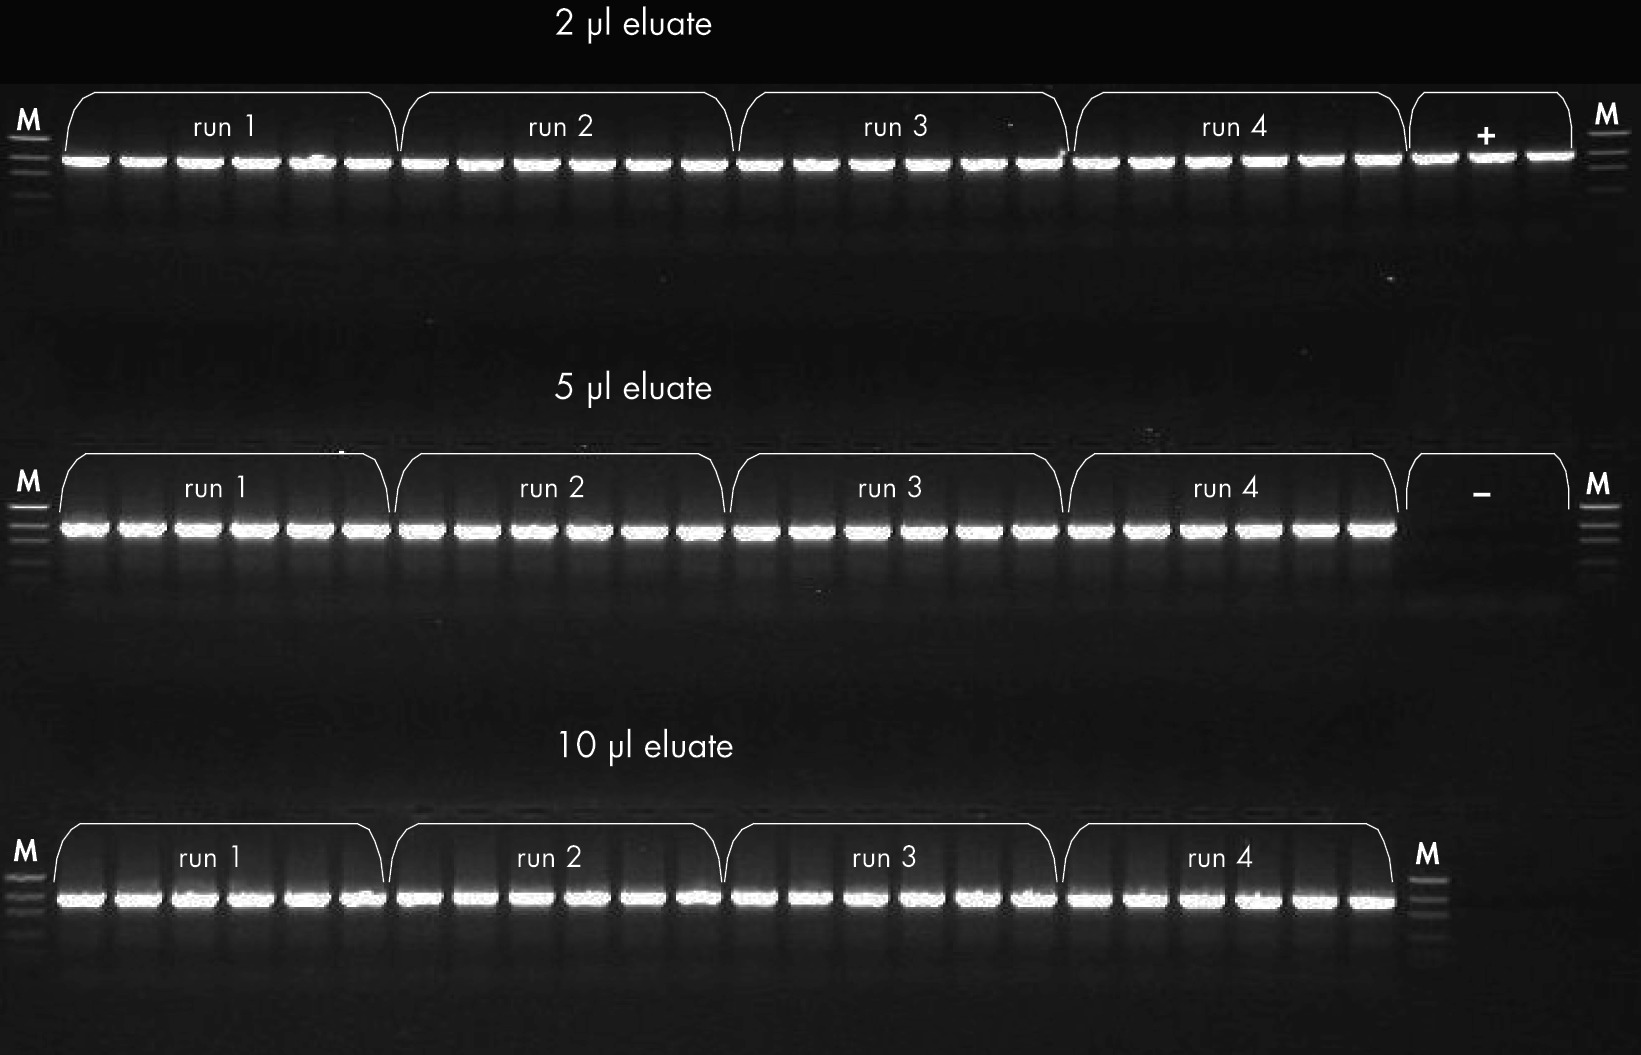 Effects of eluate volume used in PCR on PCR performance